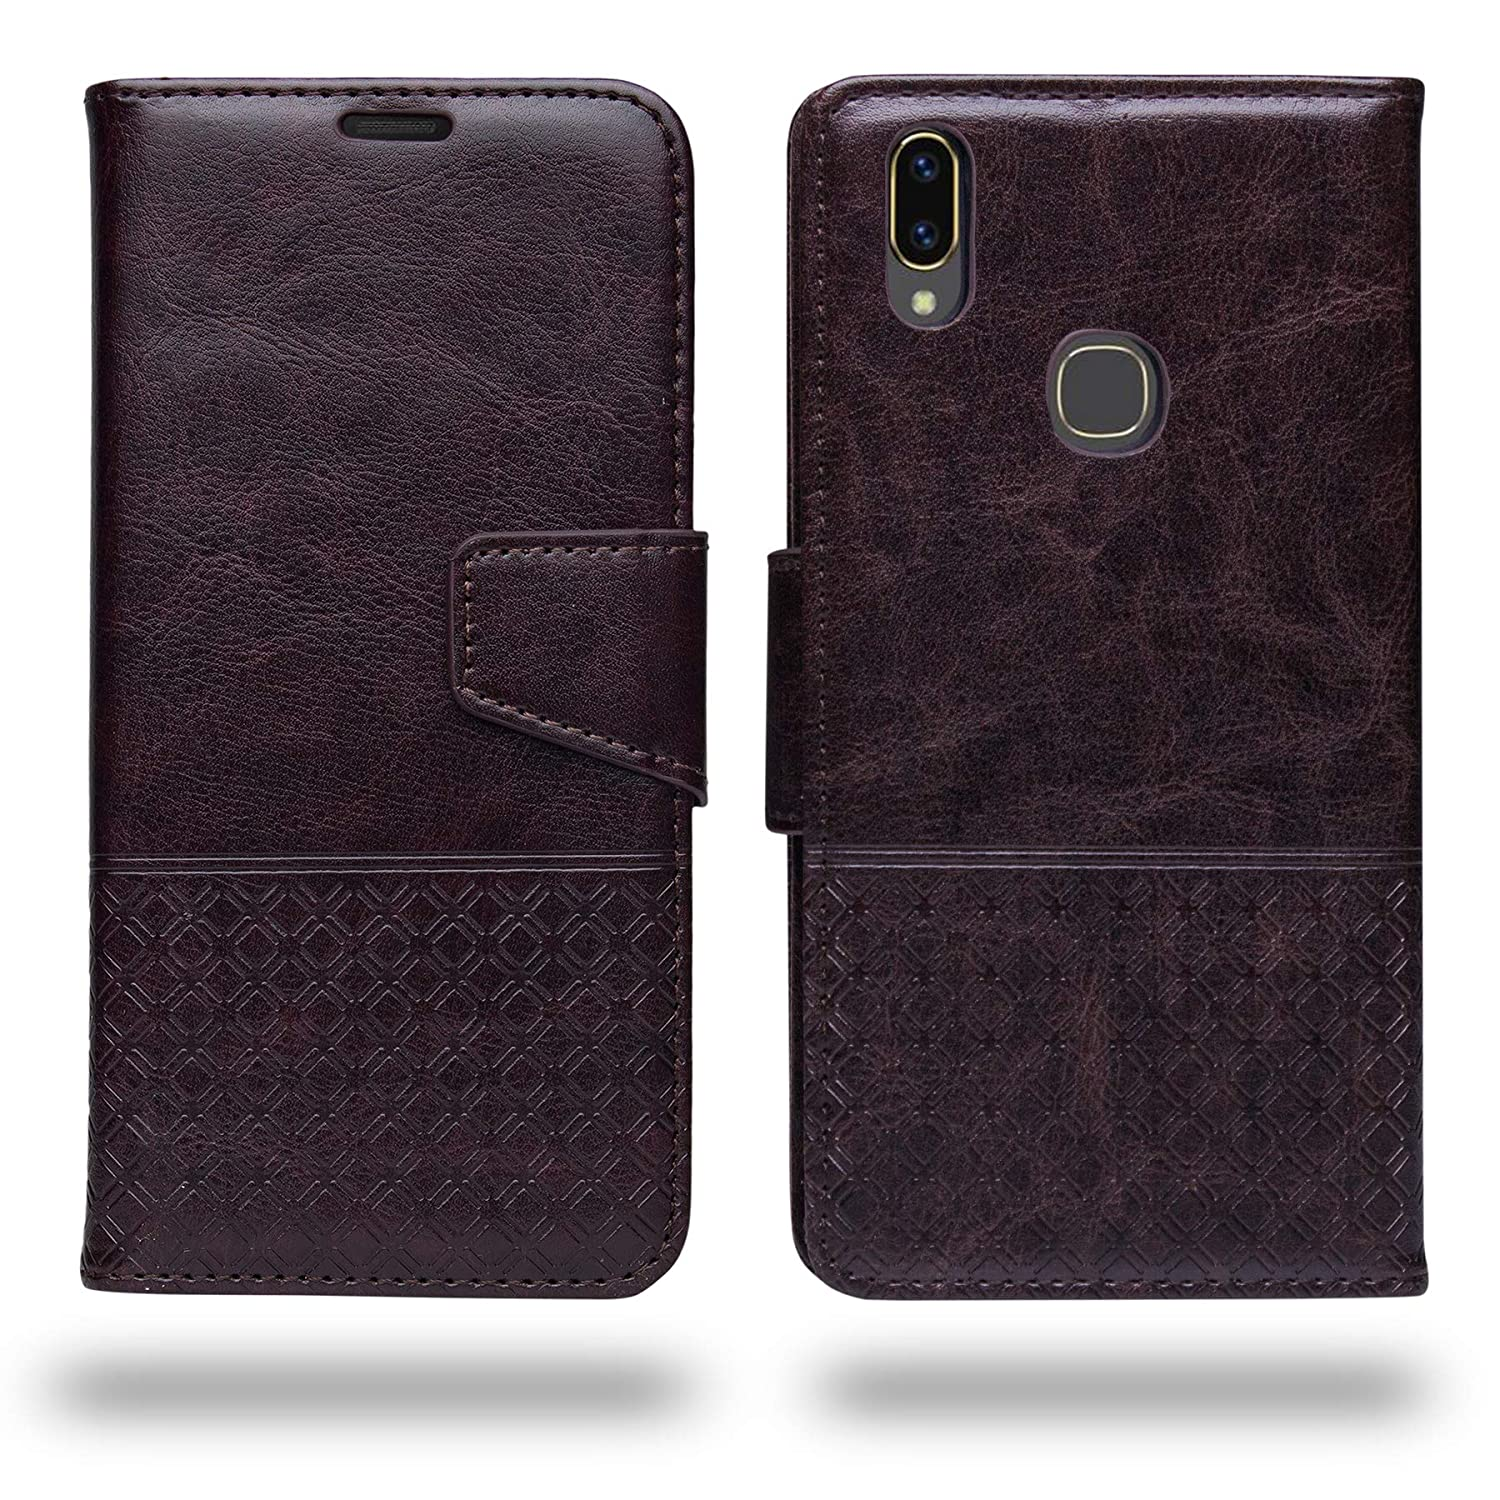 buy online 0b9aa 1f13a Ceego Vivo V9 / Vivo V9 Youth Flip Cover - Luxuria Compact Flip Case for  Vivo V9 / V9 Youth [with Credit Card Slot] (Chestnut Brown)